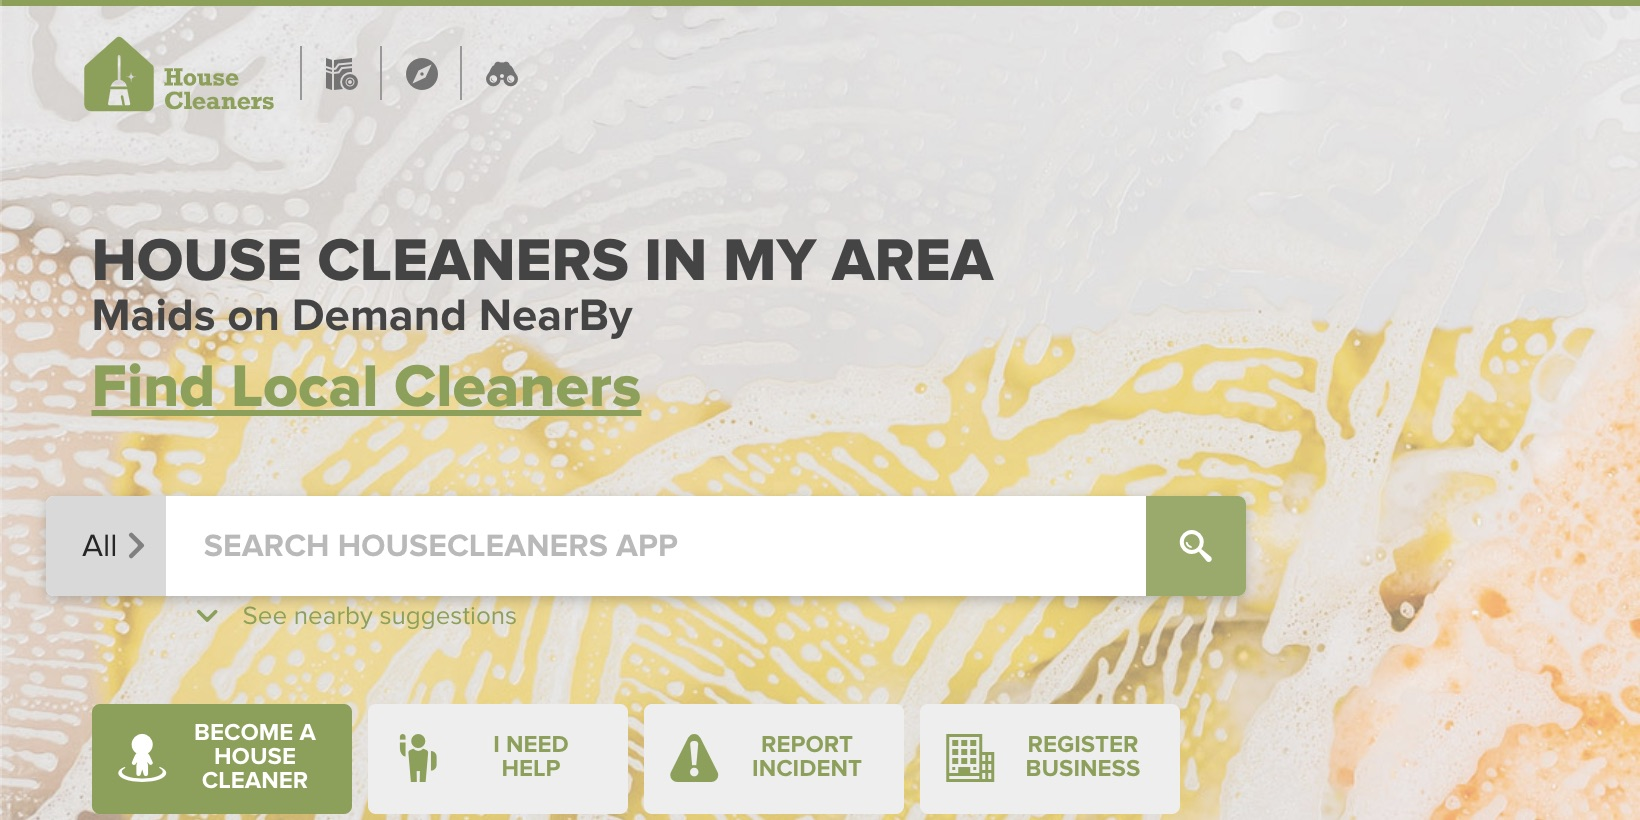 housecleaners.app website